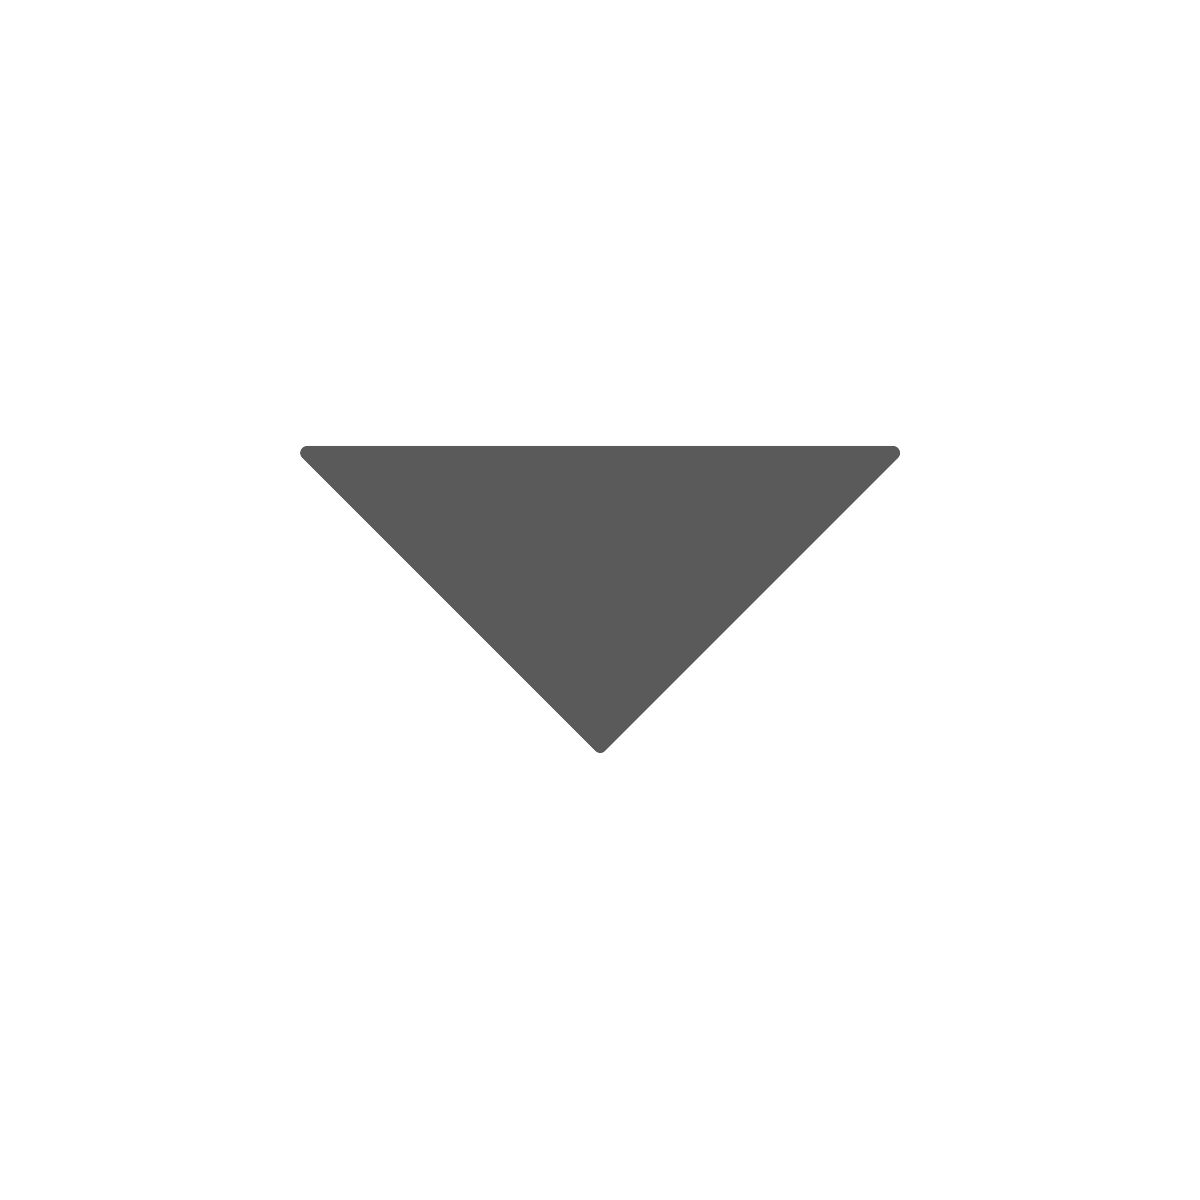 Video play button symbol